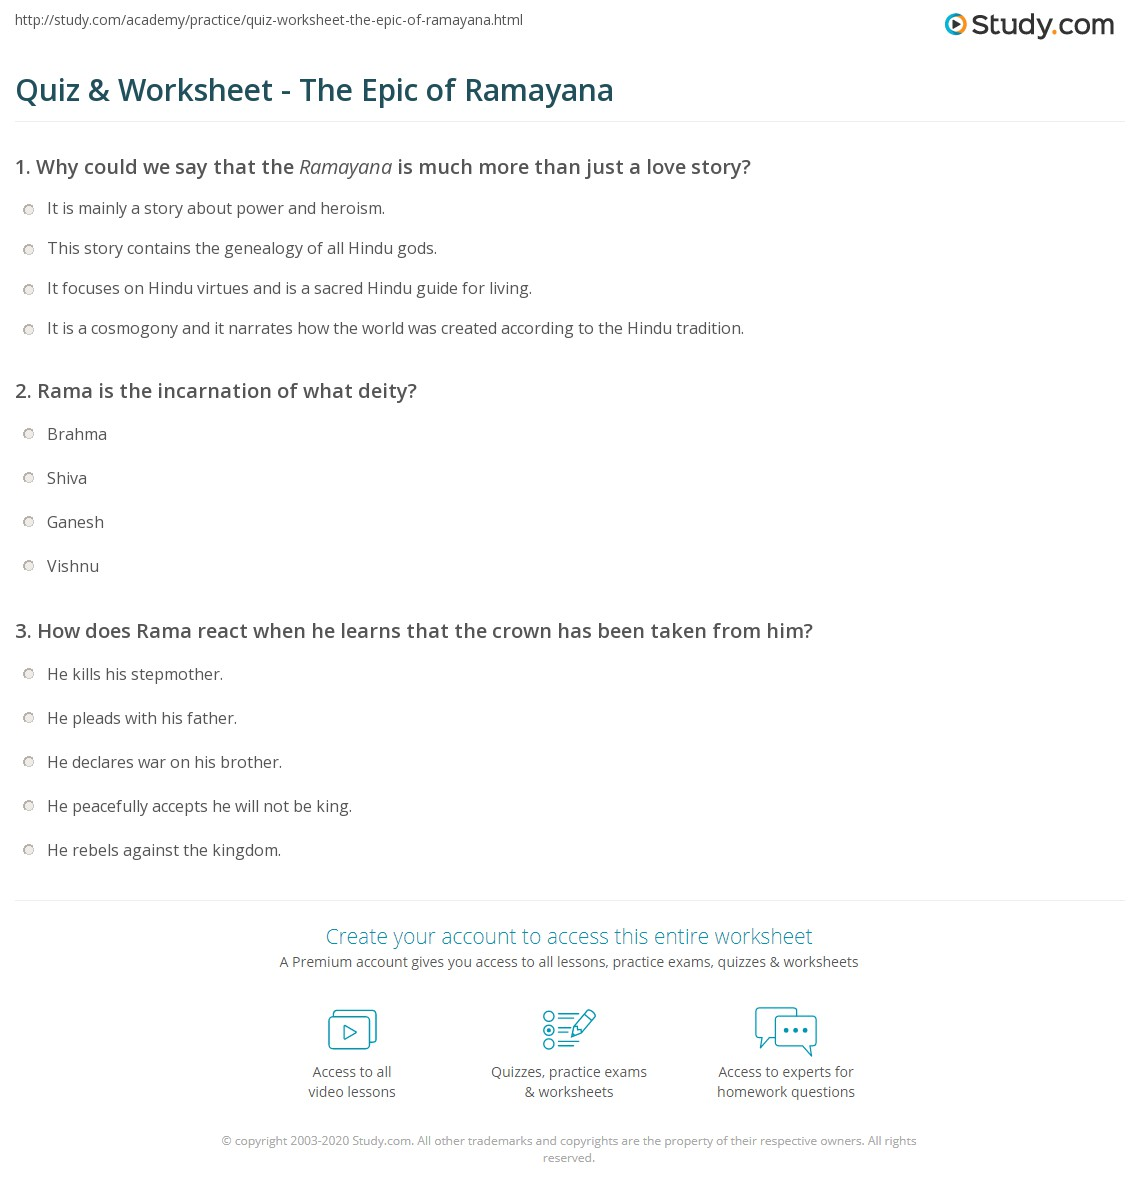 Ramayana Quiz Questions And Answers In Hindi